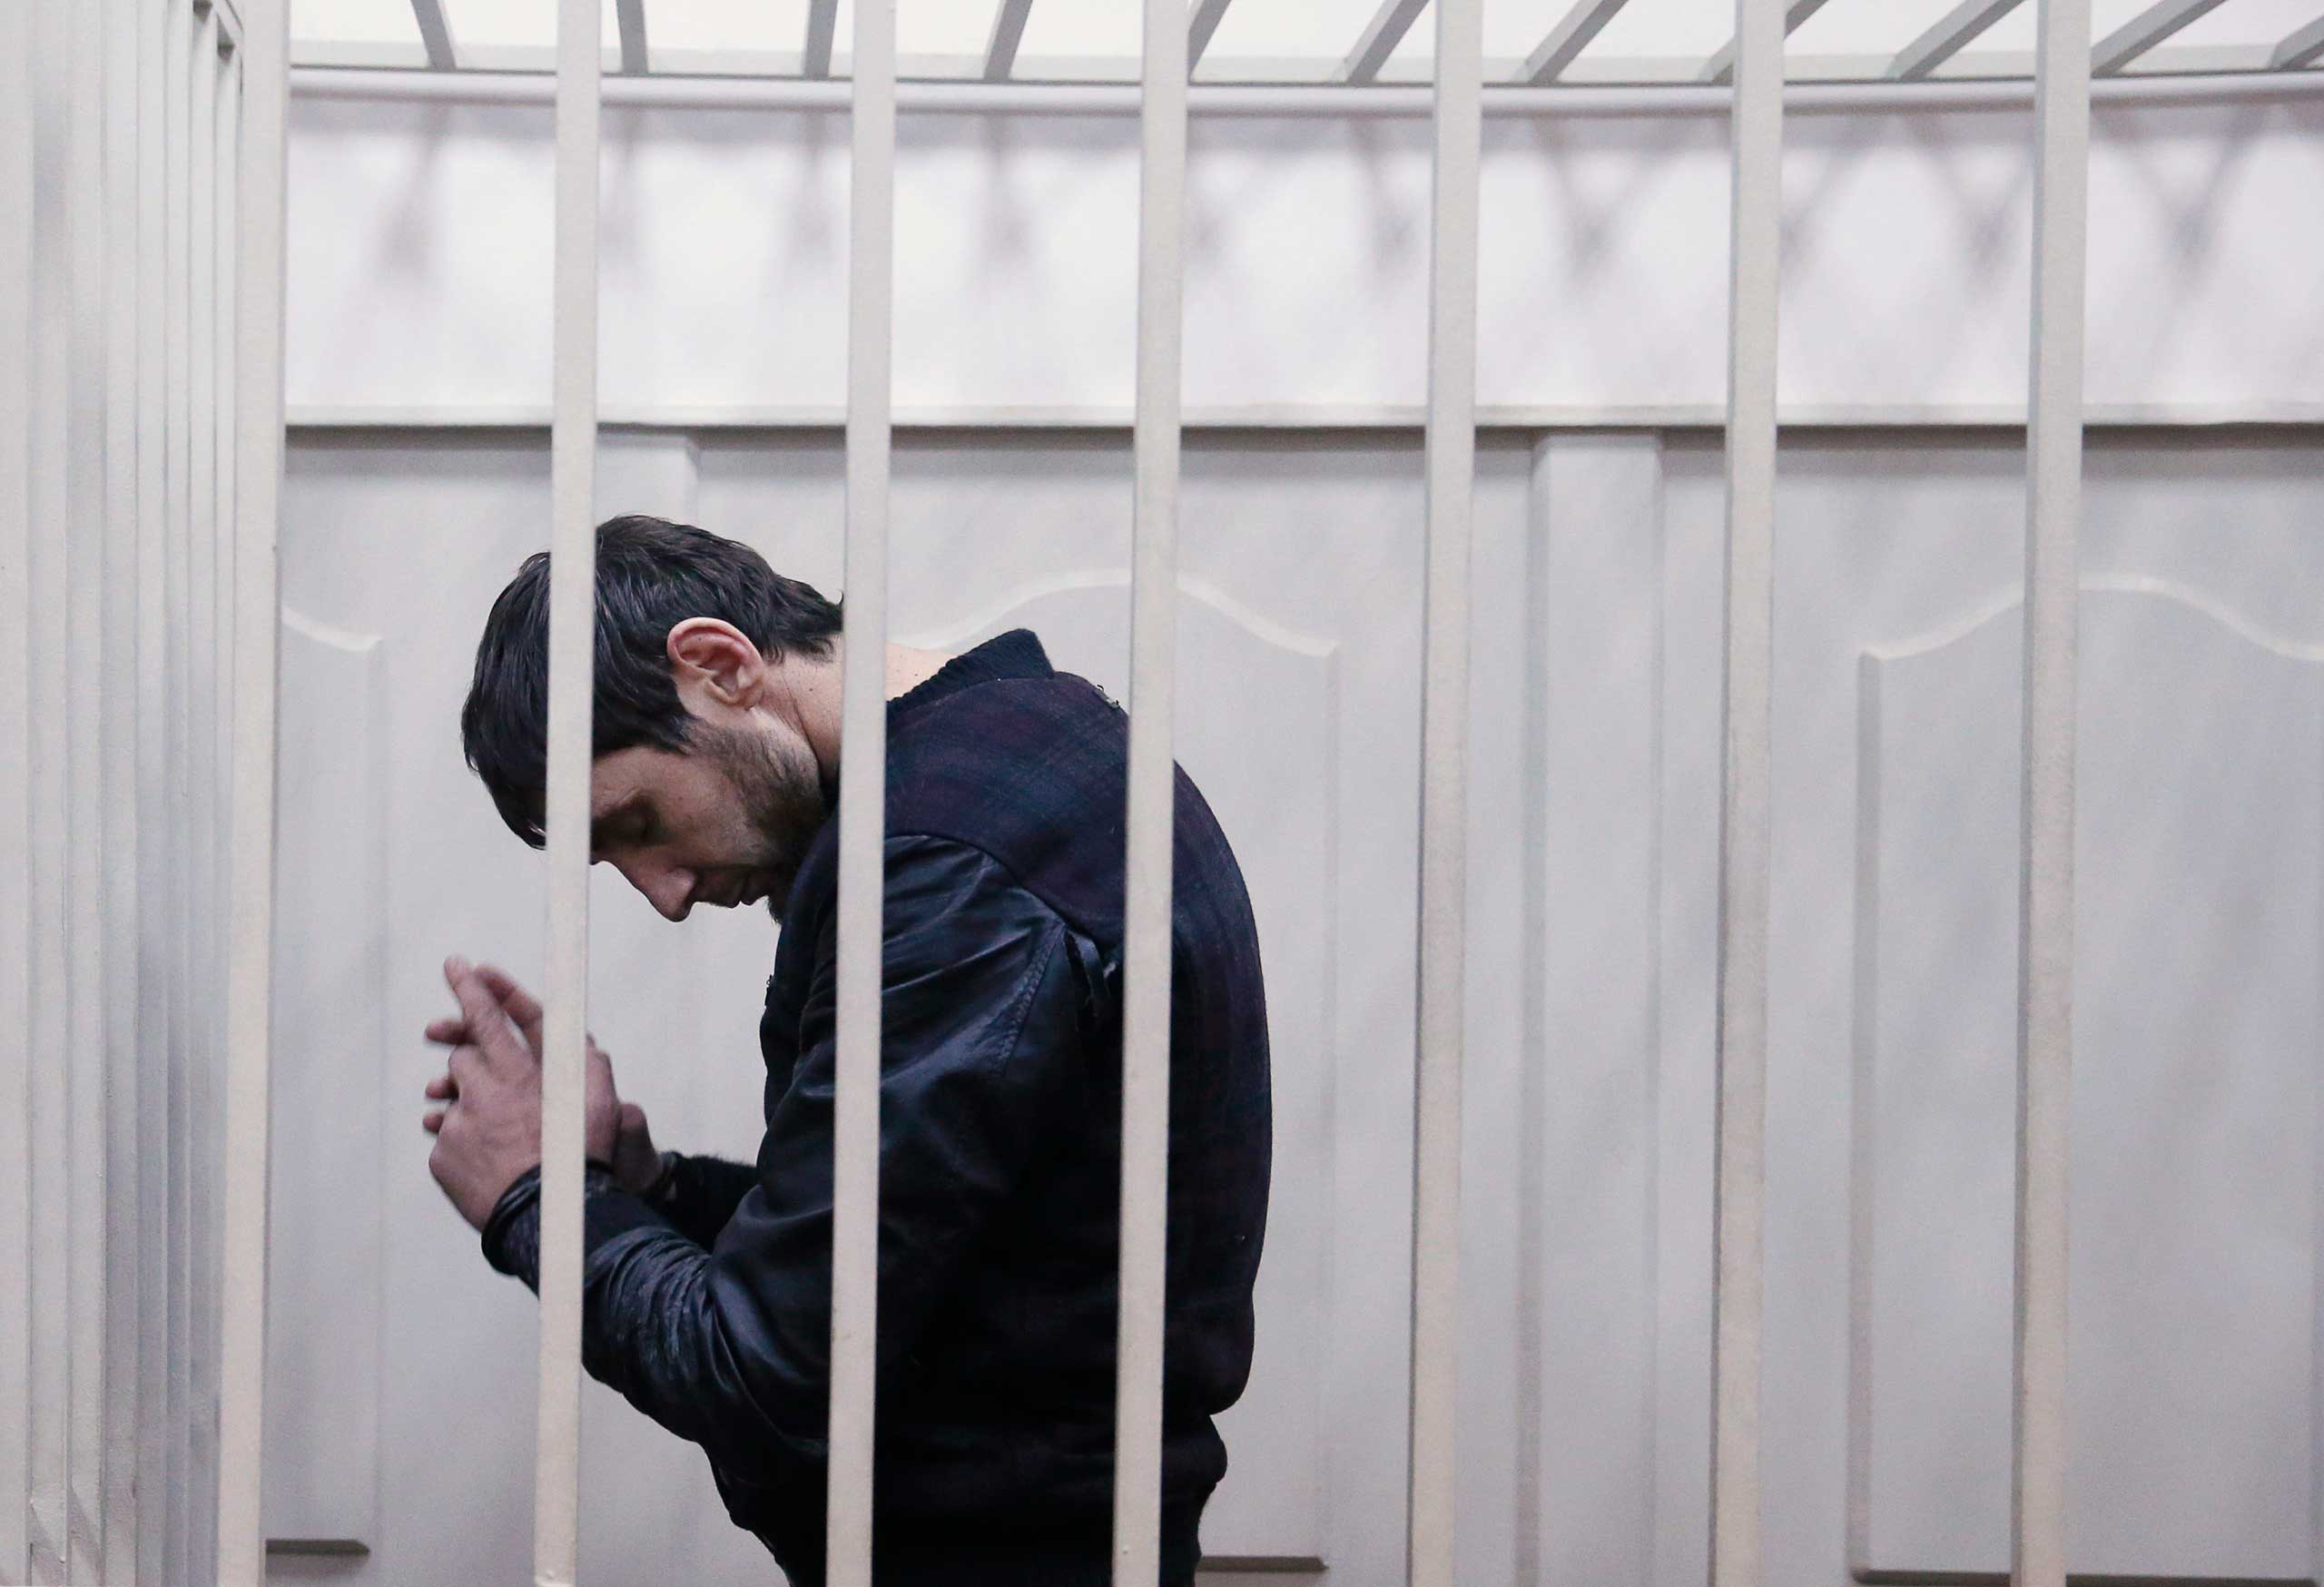 Zaur Dadayev, charged over the killing of Russian opposition figure Boris Nemtsov, stands inside a defendants' cage inside a court building in Moscow, March 8, 2015.